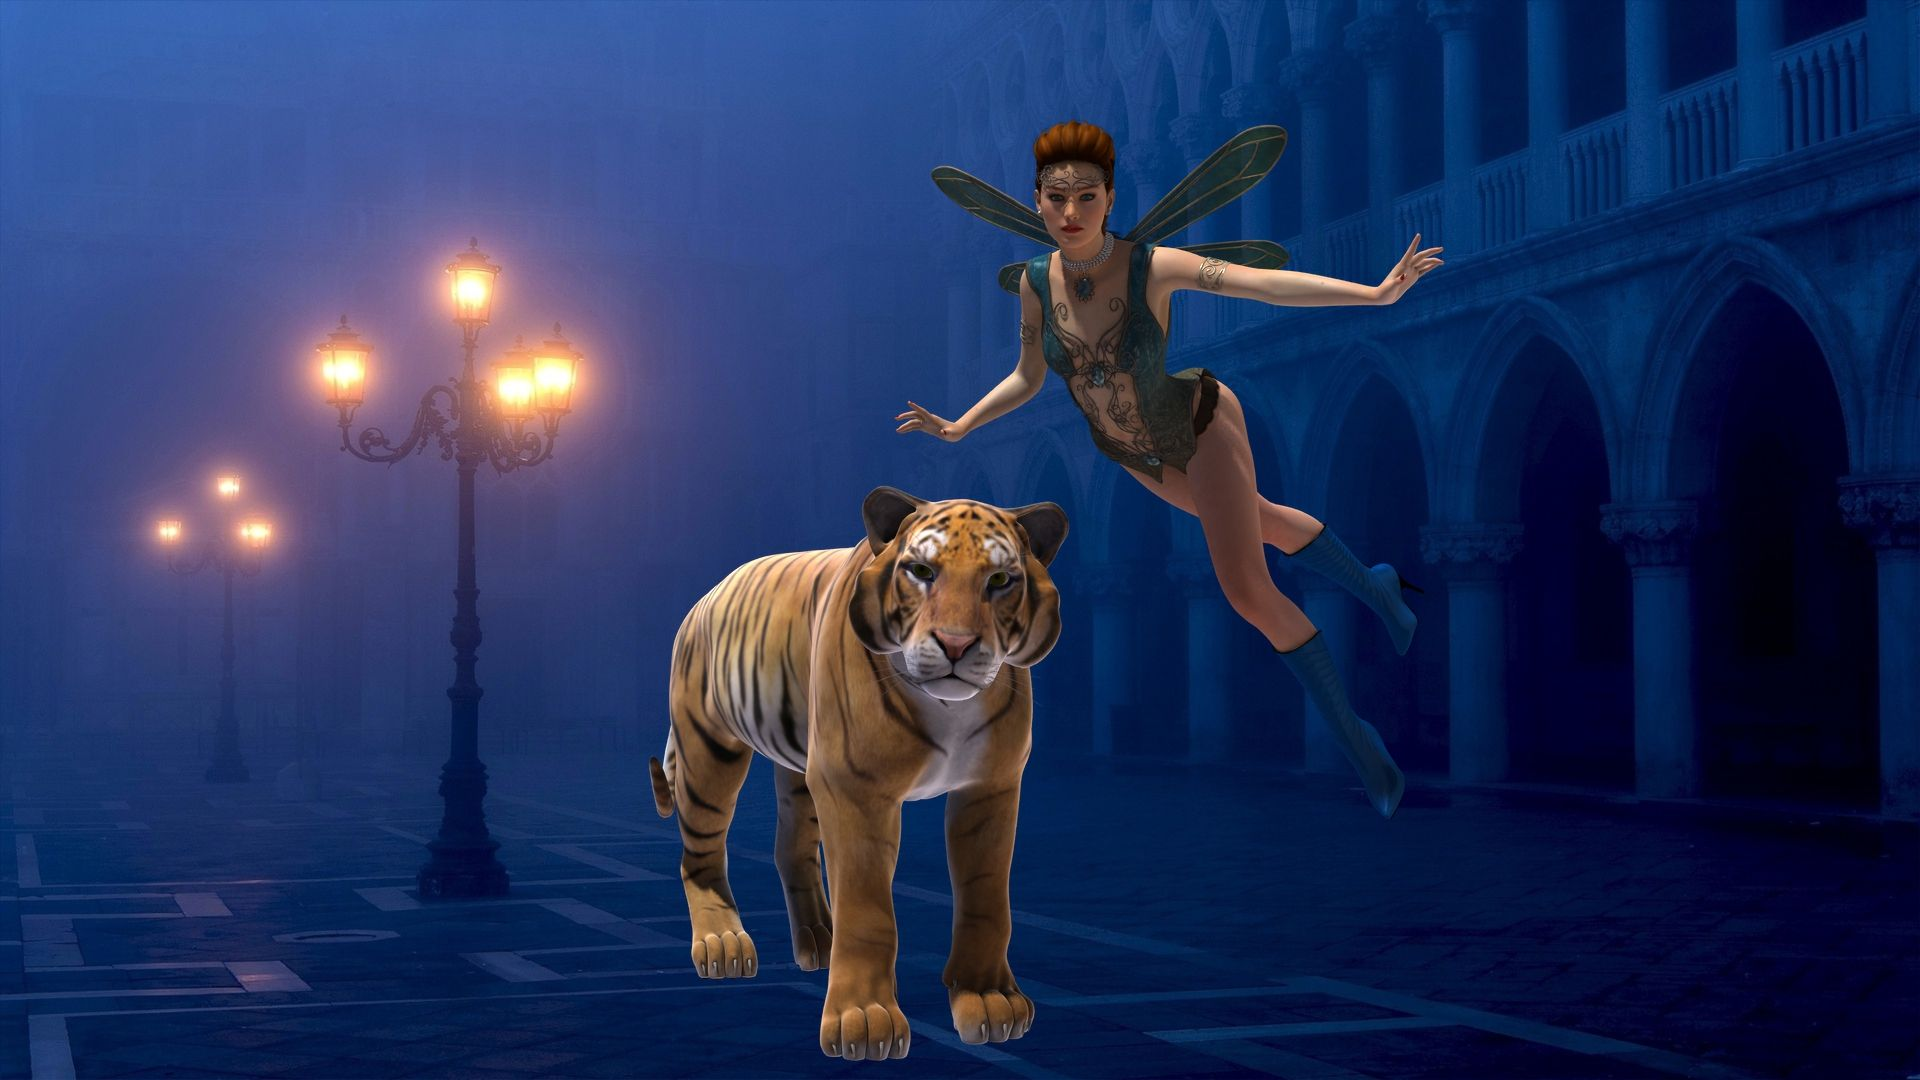 fairy and tiger